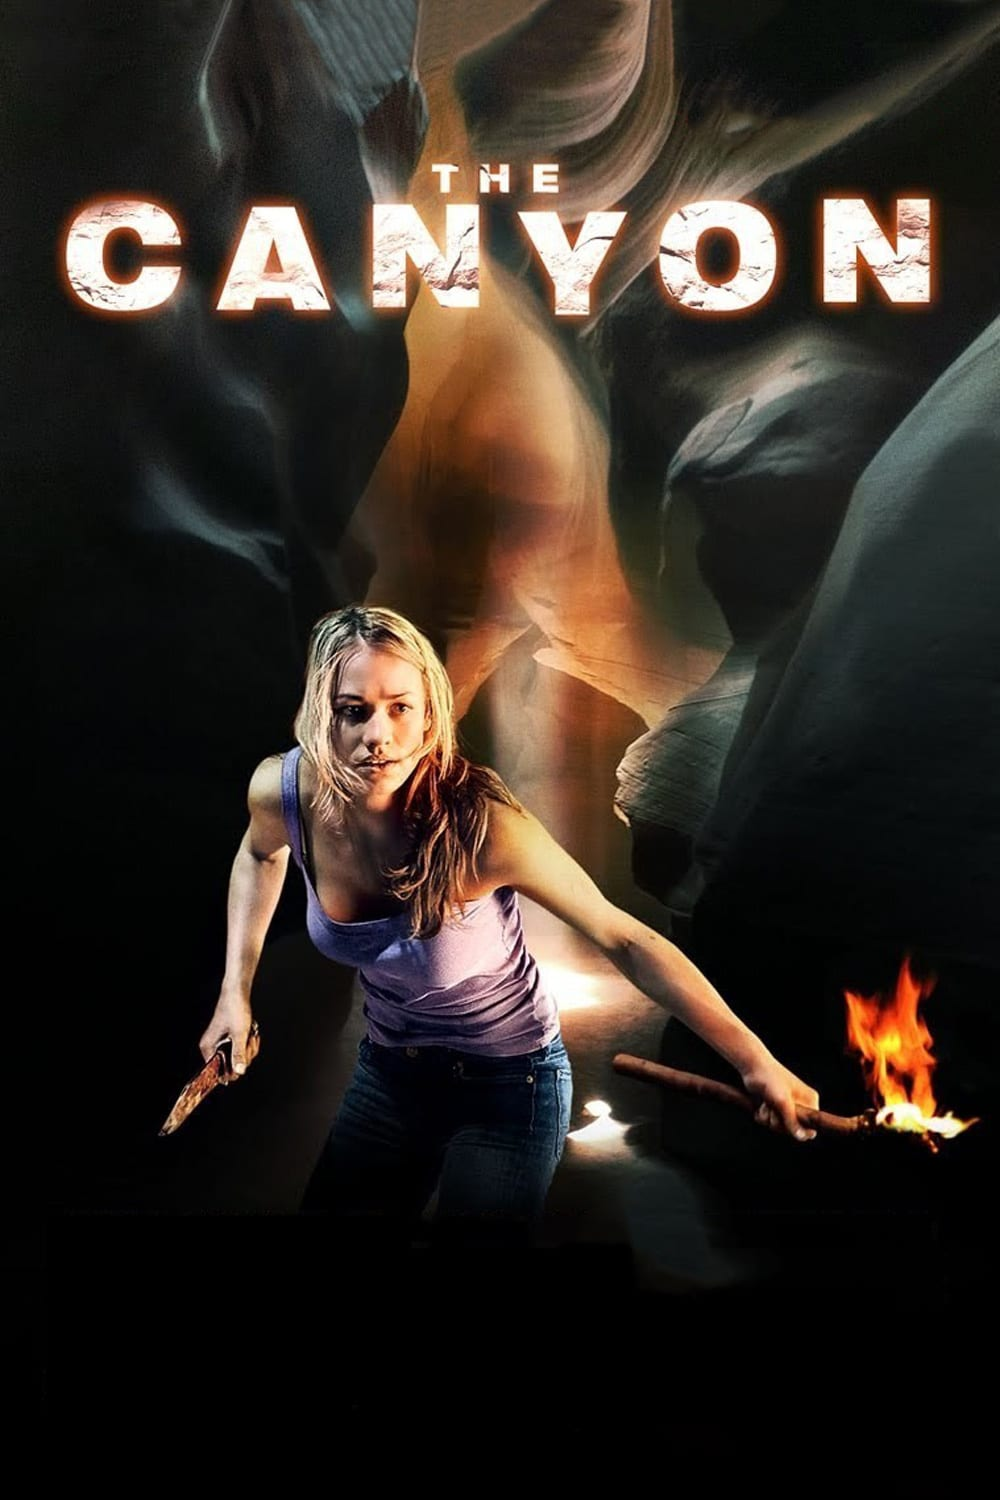 The Canyon, 2009